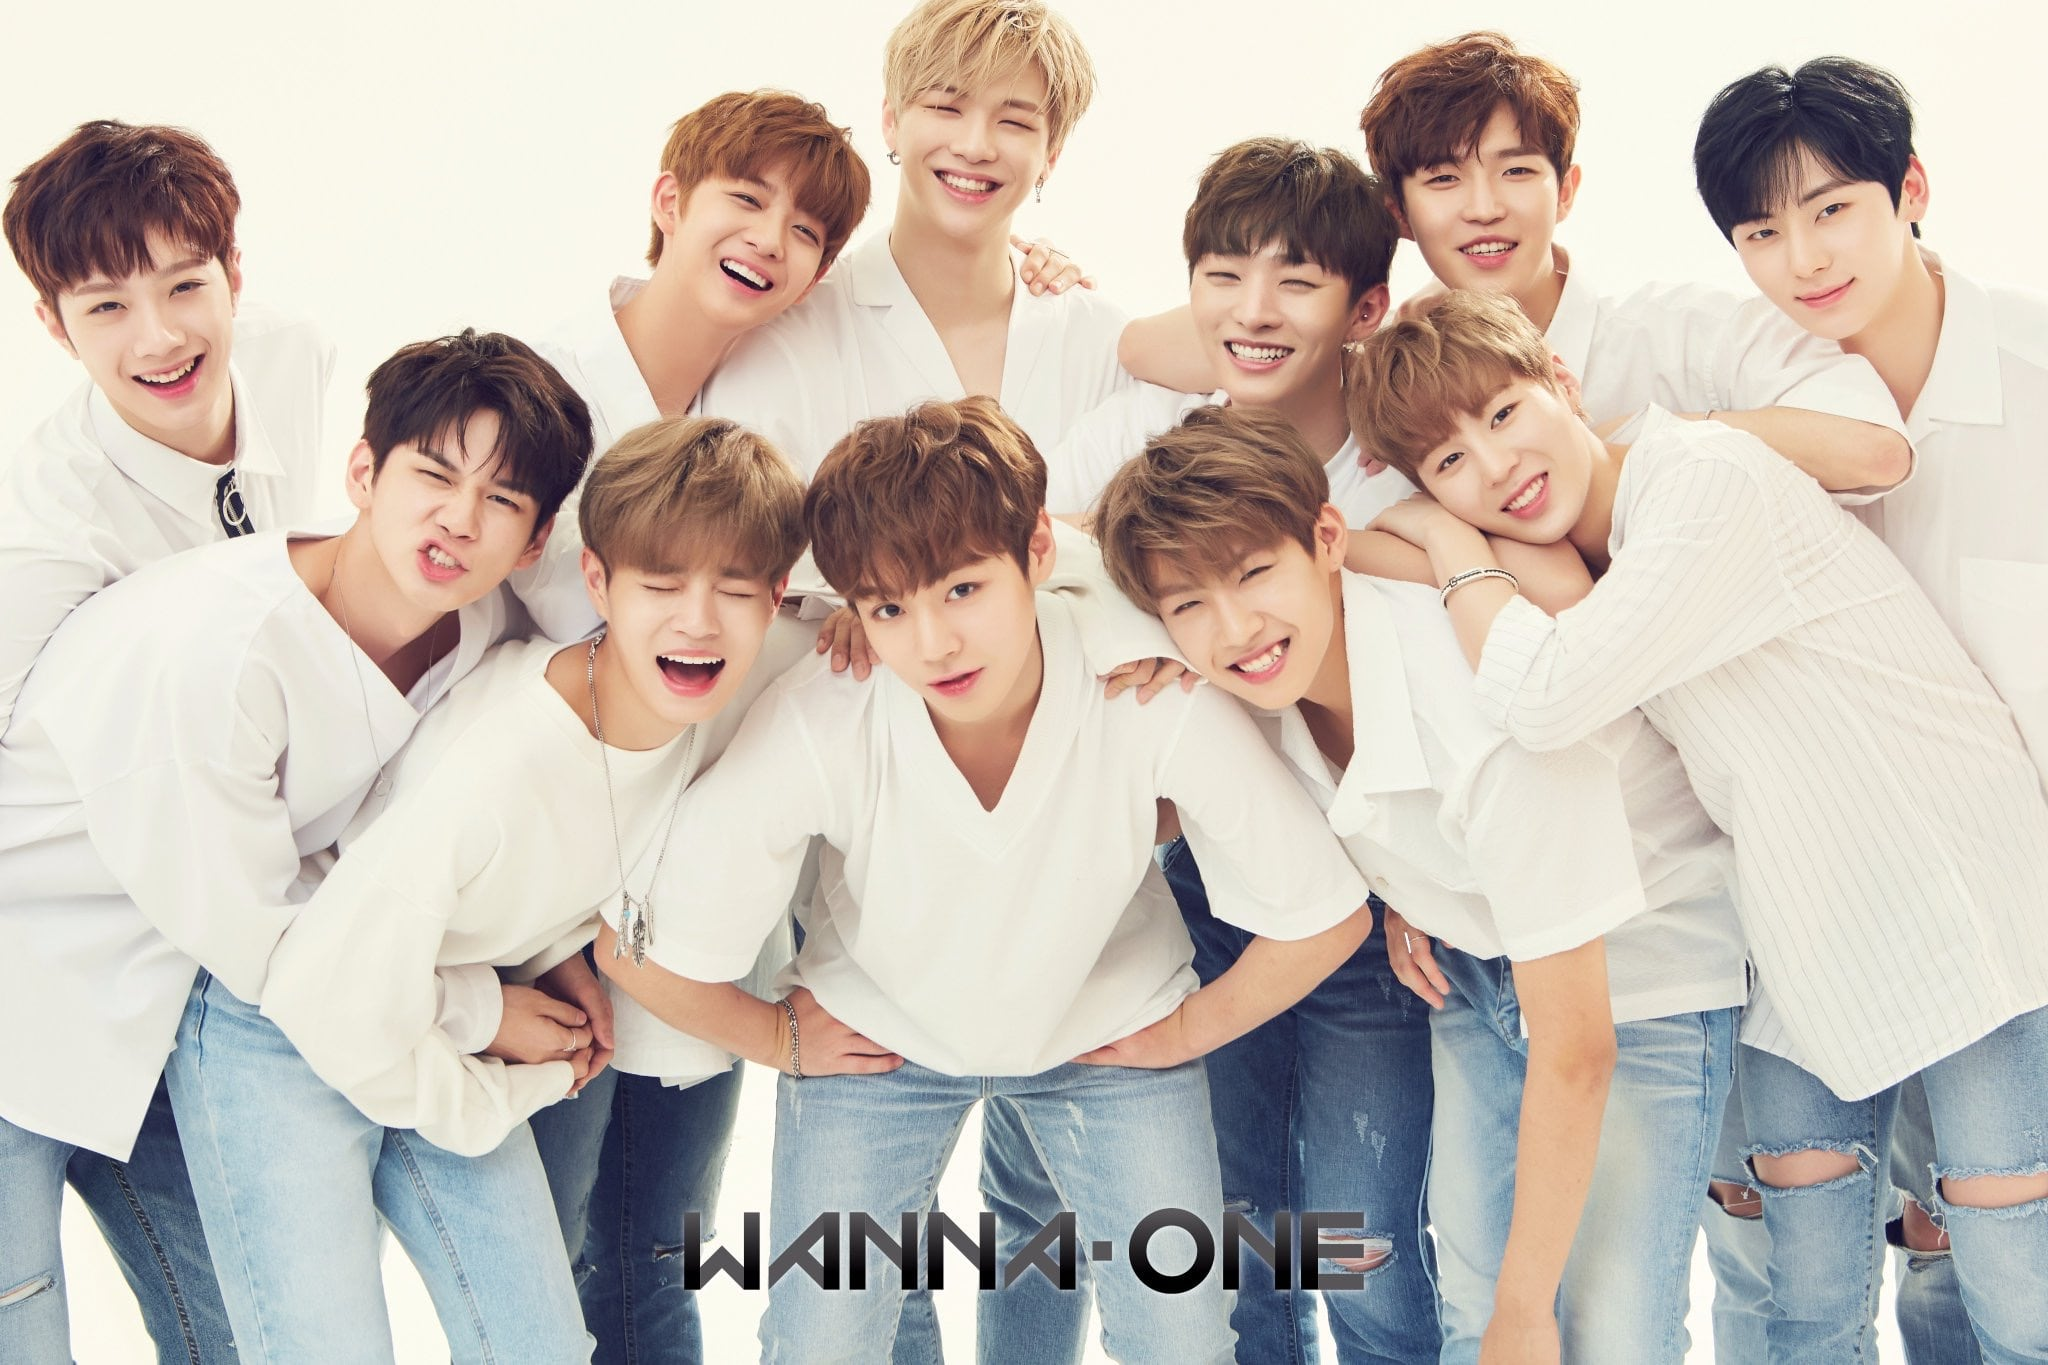 Wanna One Picks Their Dorm Roommates In First Episode Of Reality Show